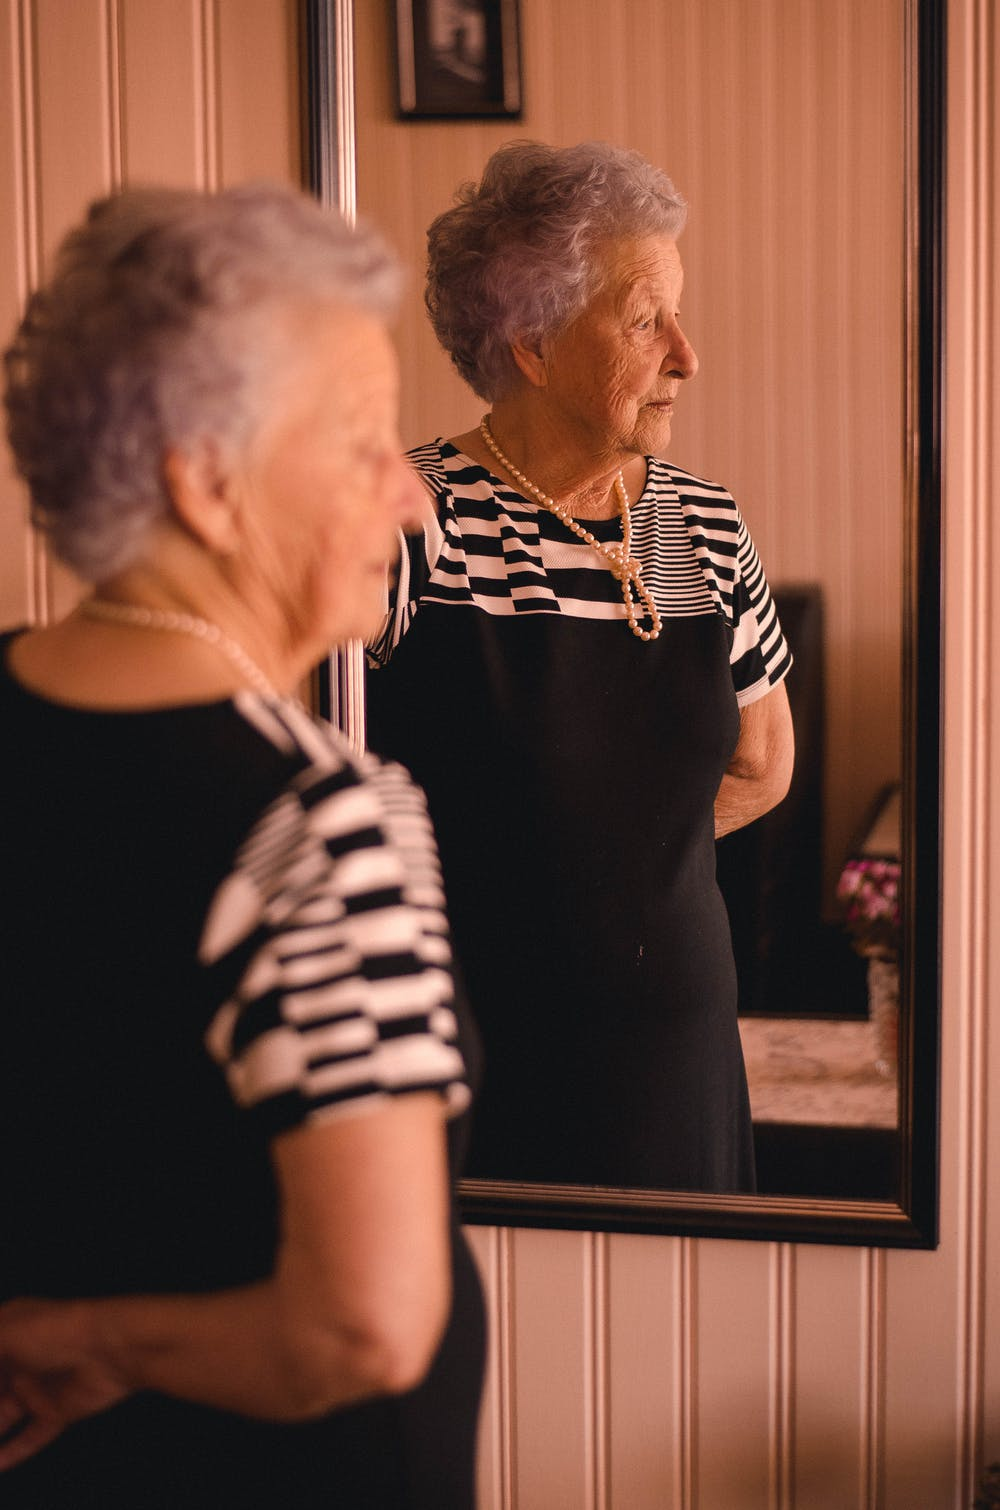 Woman standing in front of a mirror | Photo: Pexels